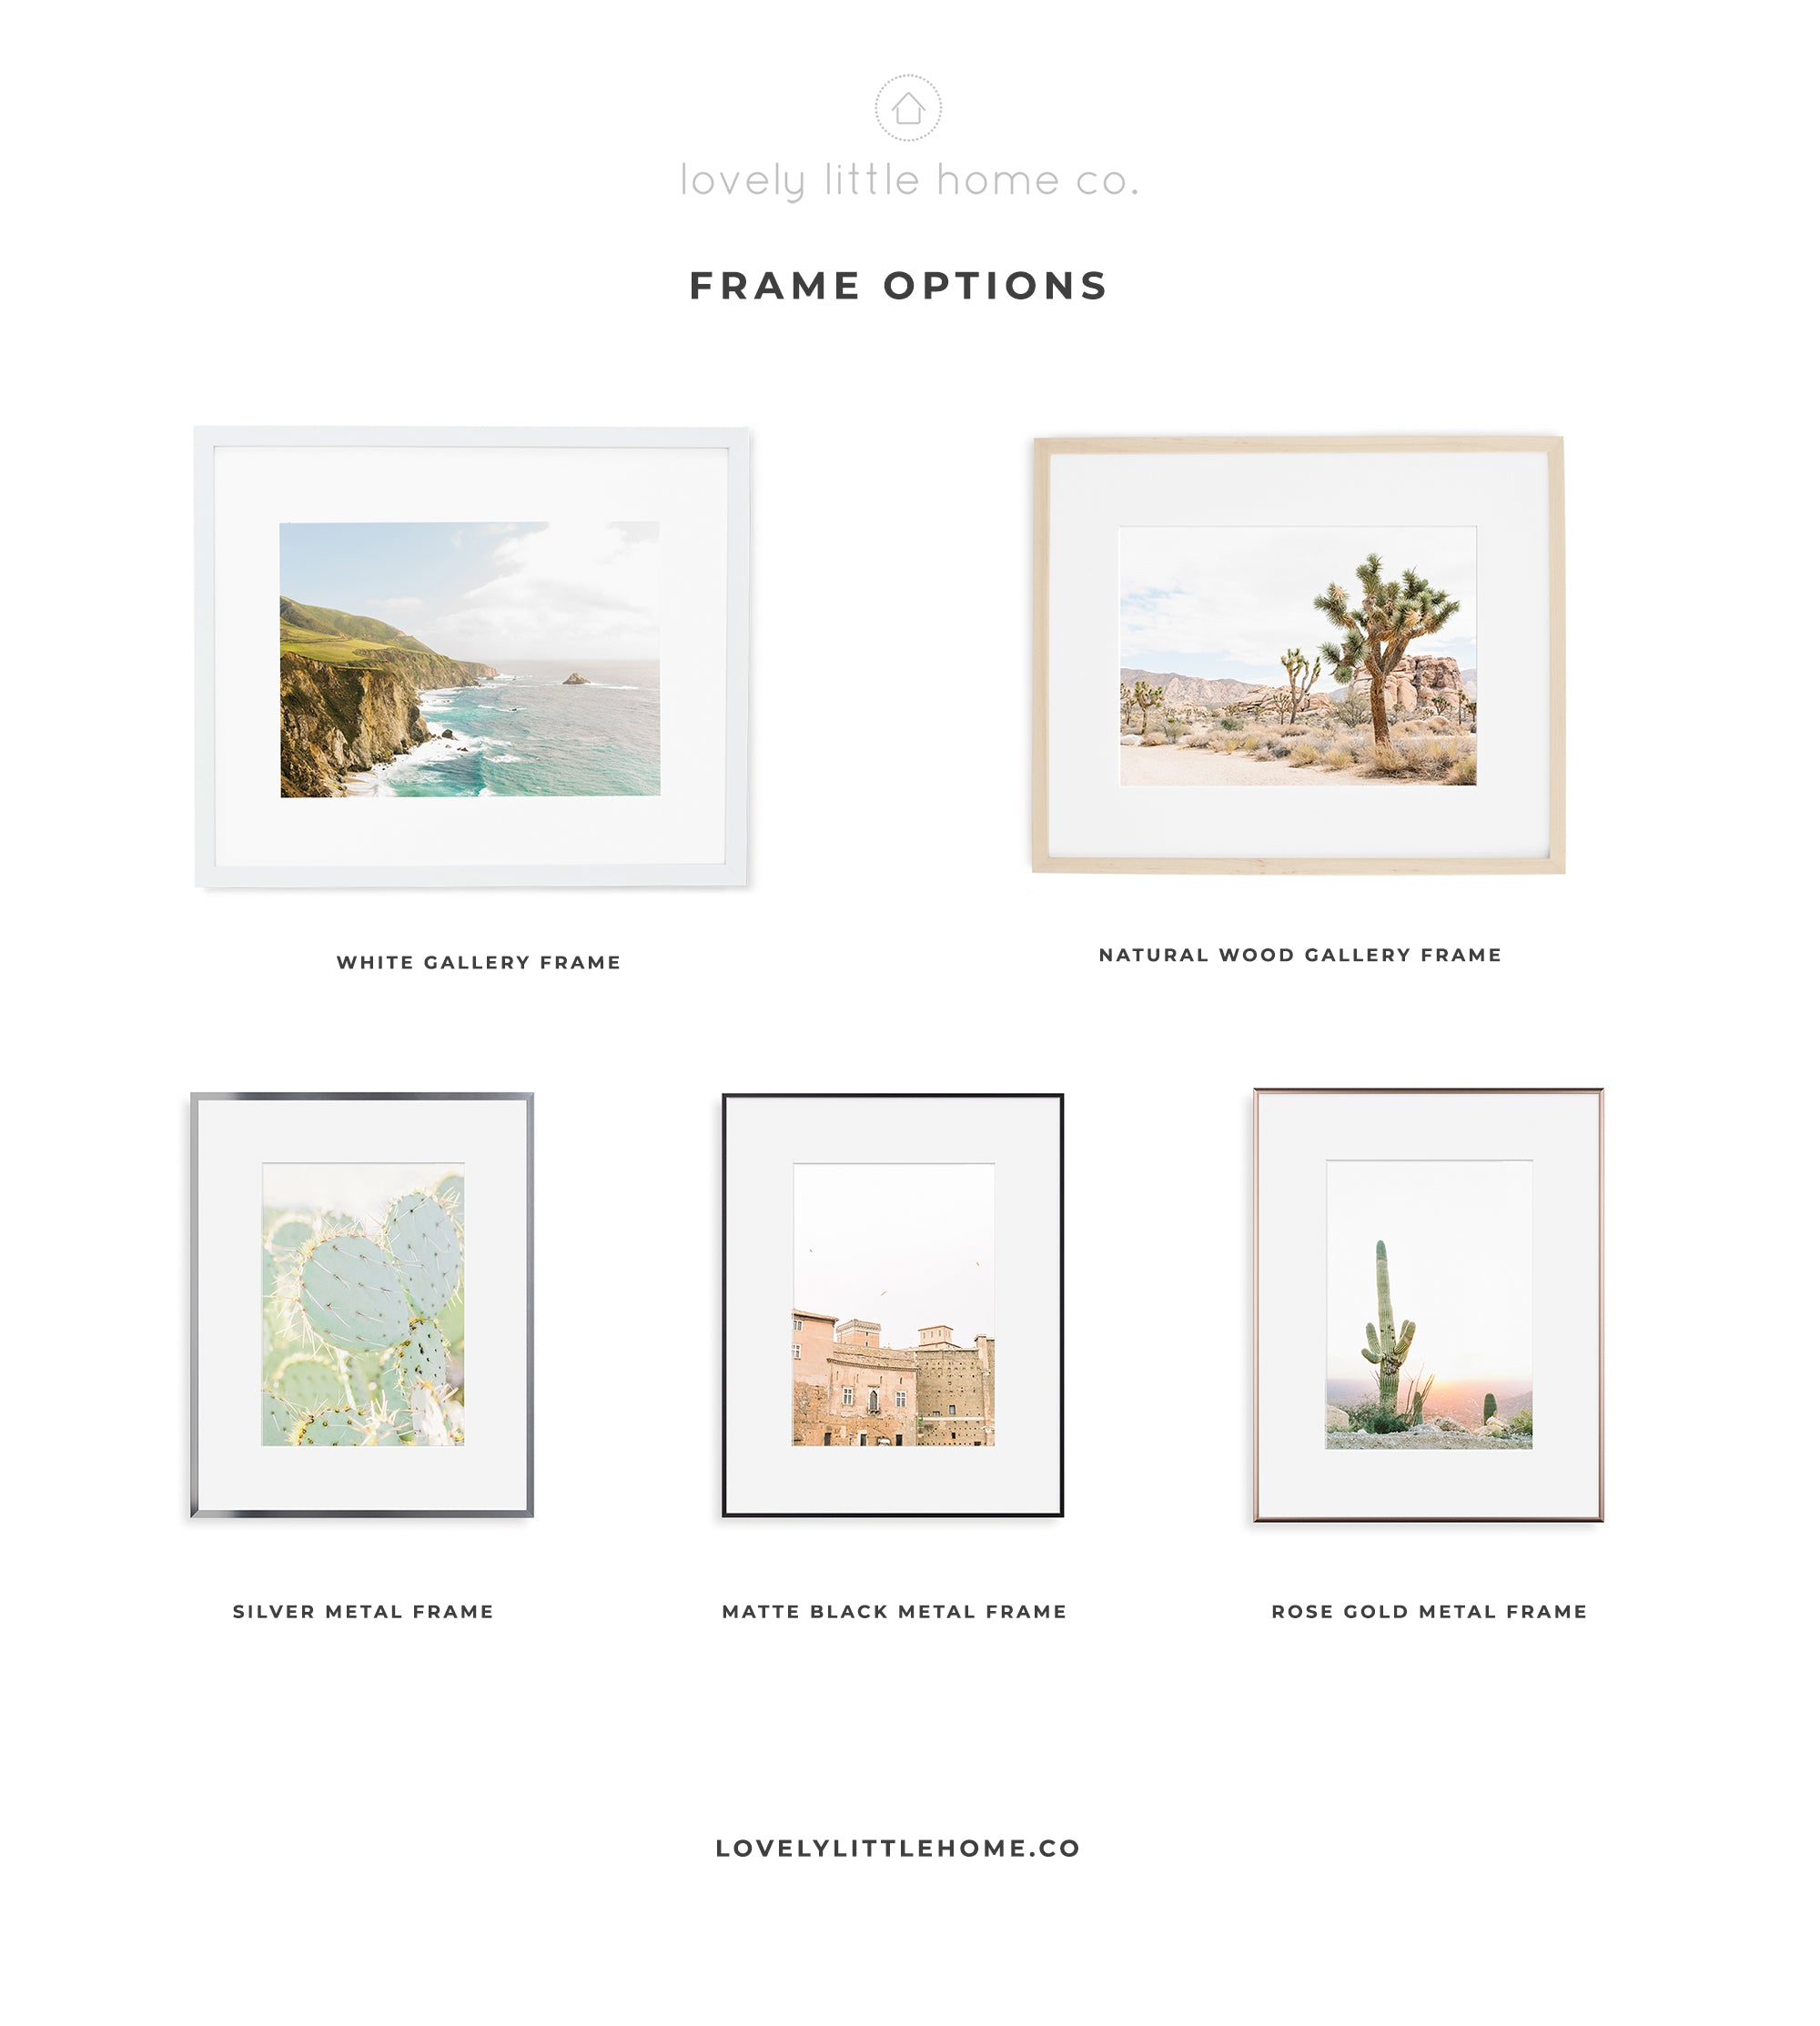 lovely little home co. travel nature photography wall art frame options